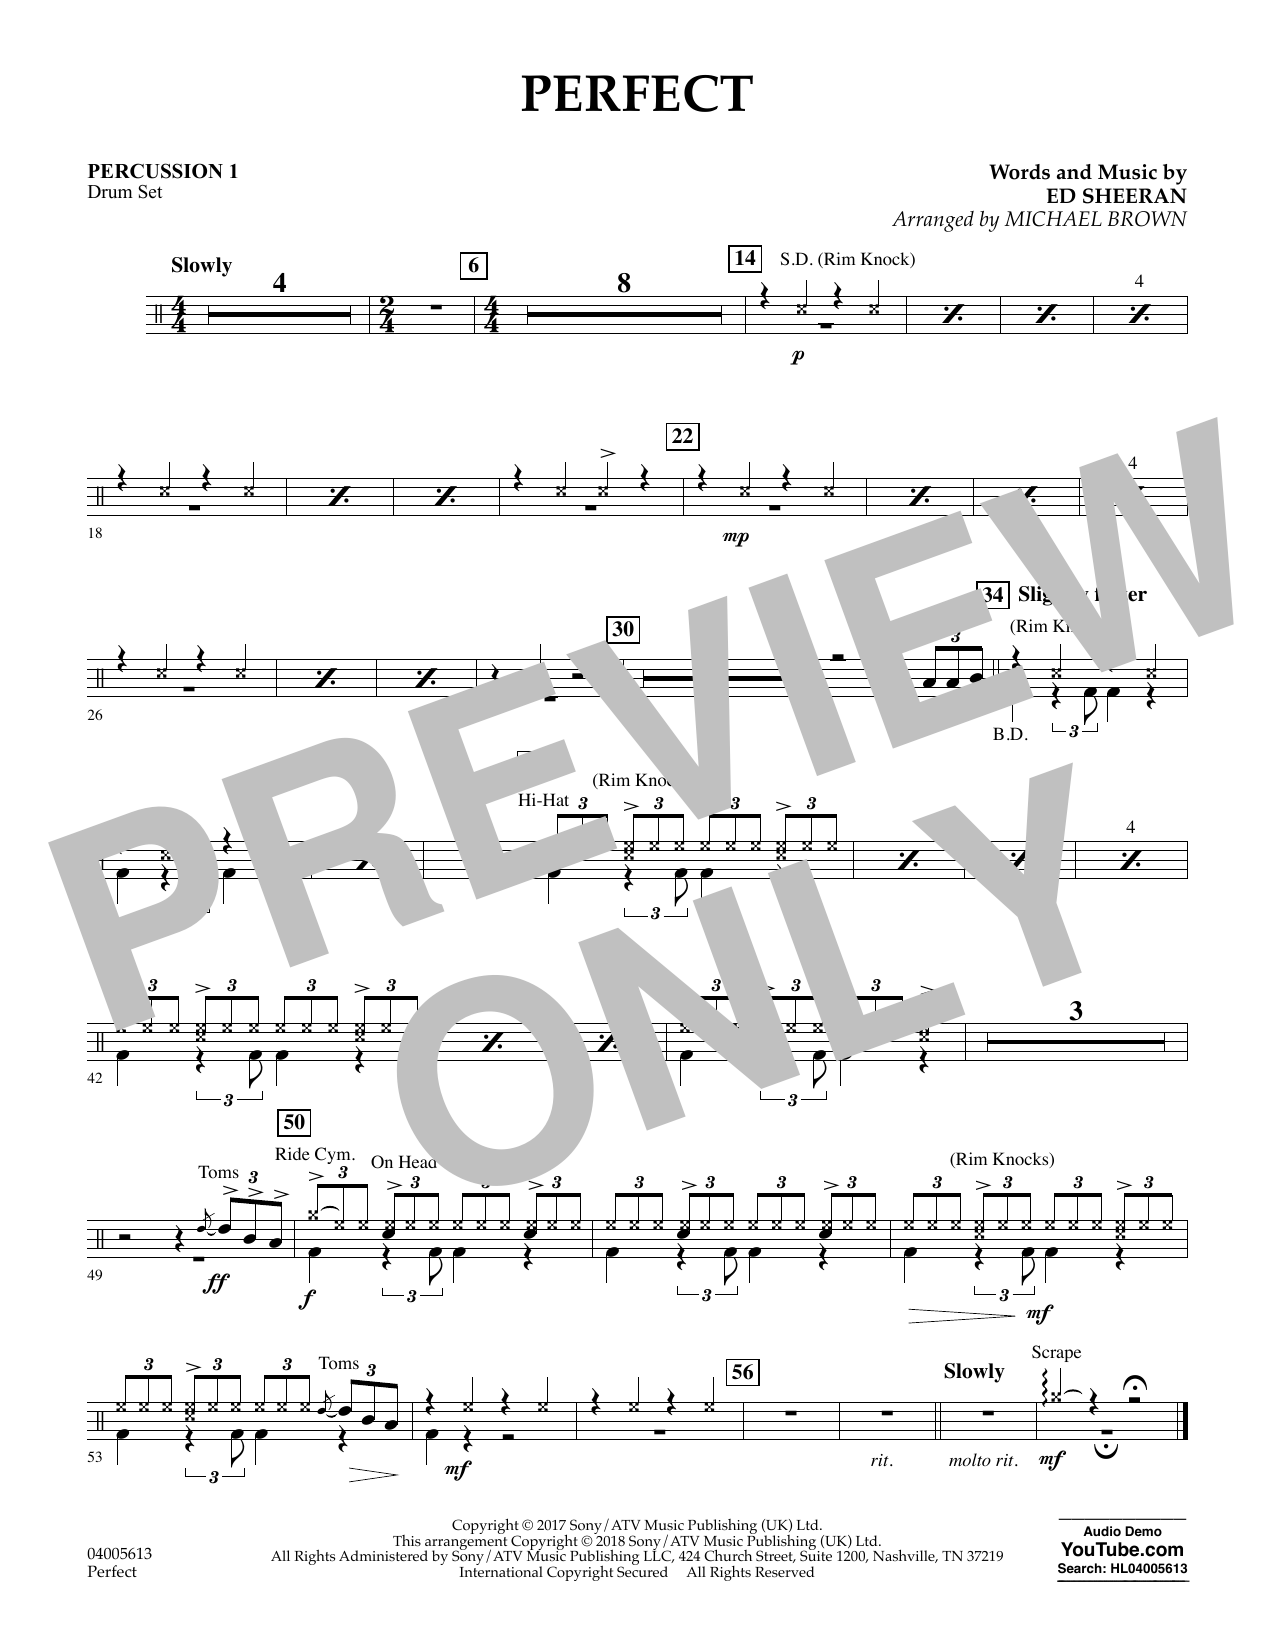 Perfect (arr. Michael Brown) - Percussion 1 (Concert Band)